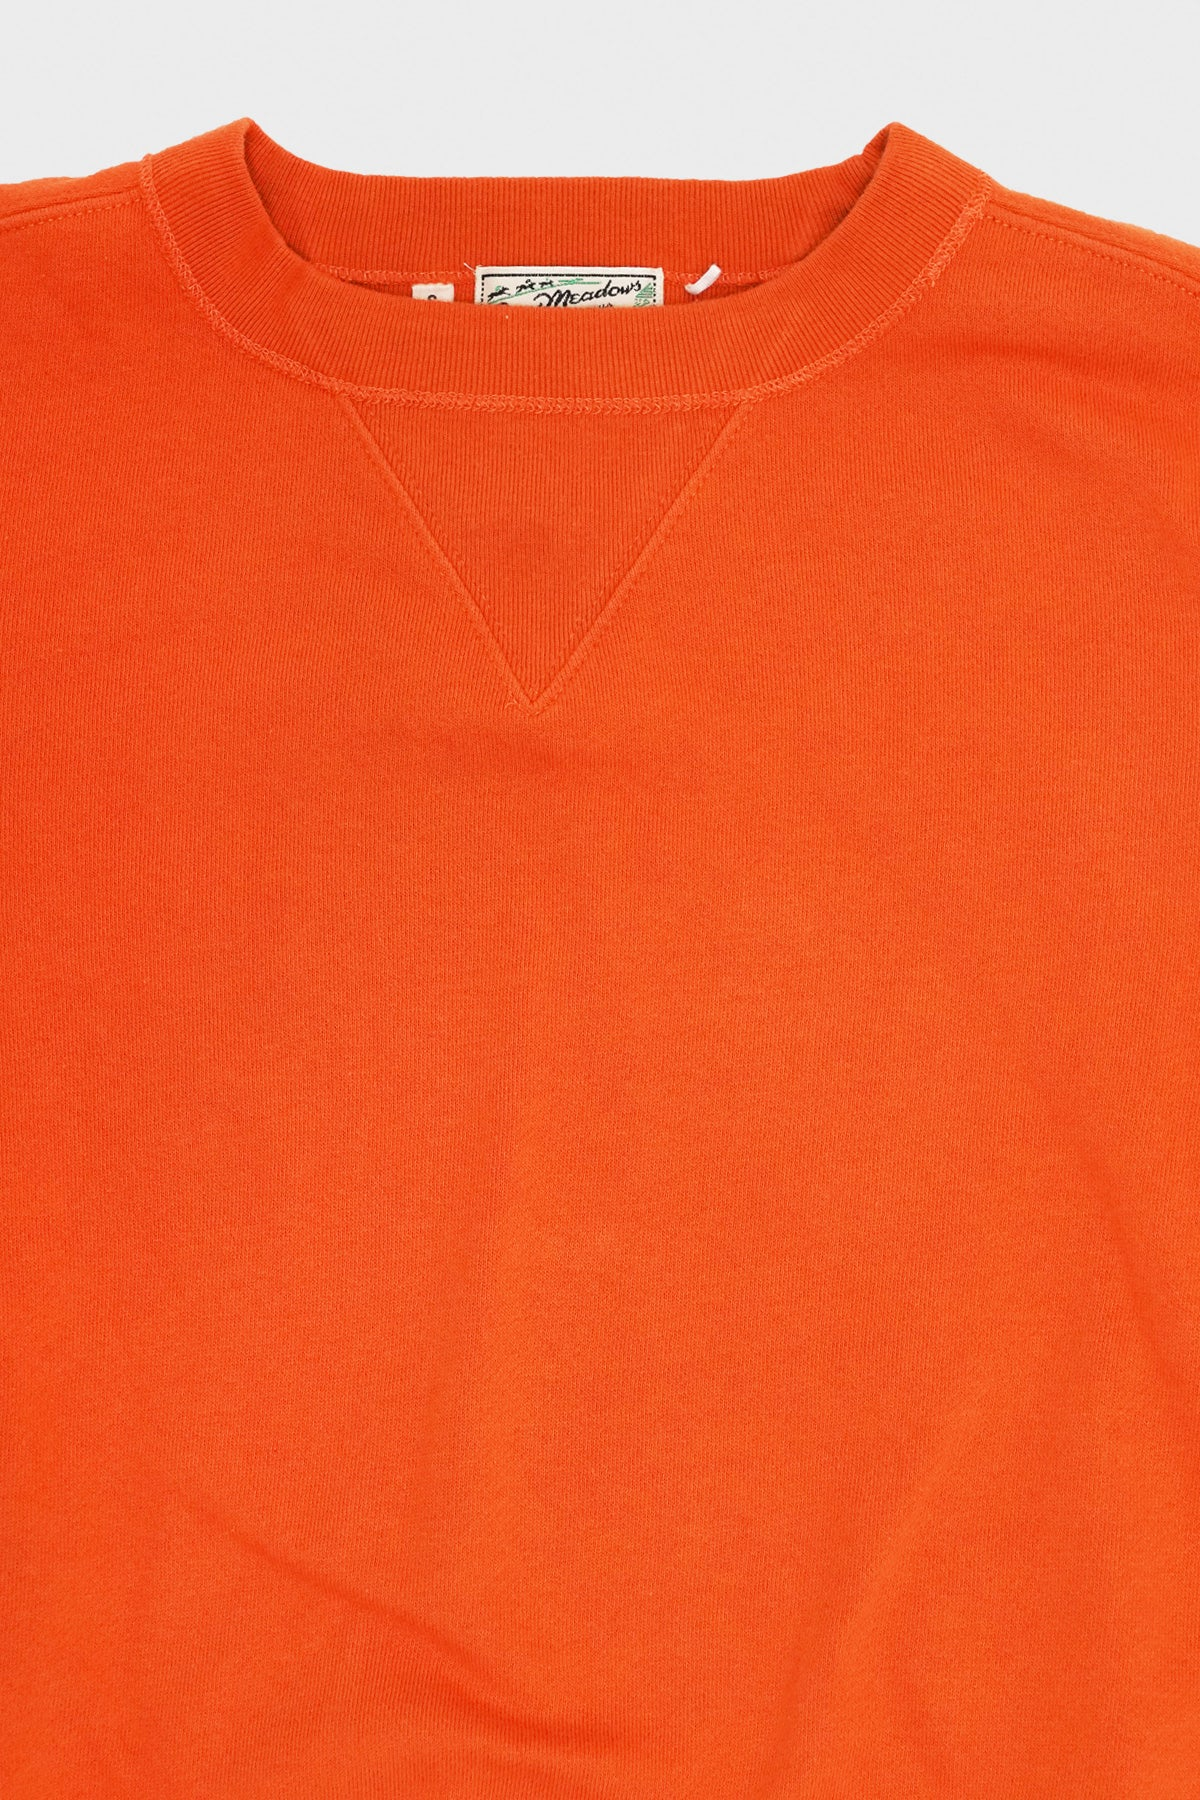 levis vintage clothing lvc Bay Meadows Sweatshirt - Russet Orange